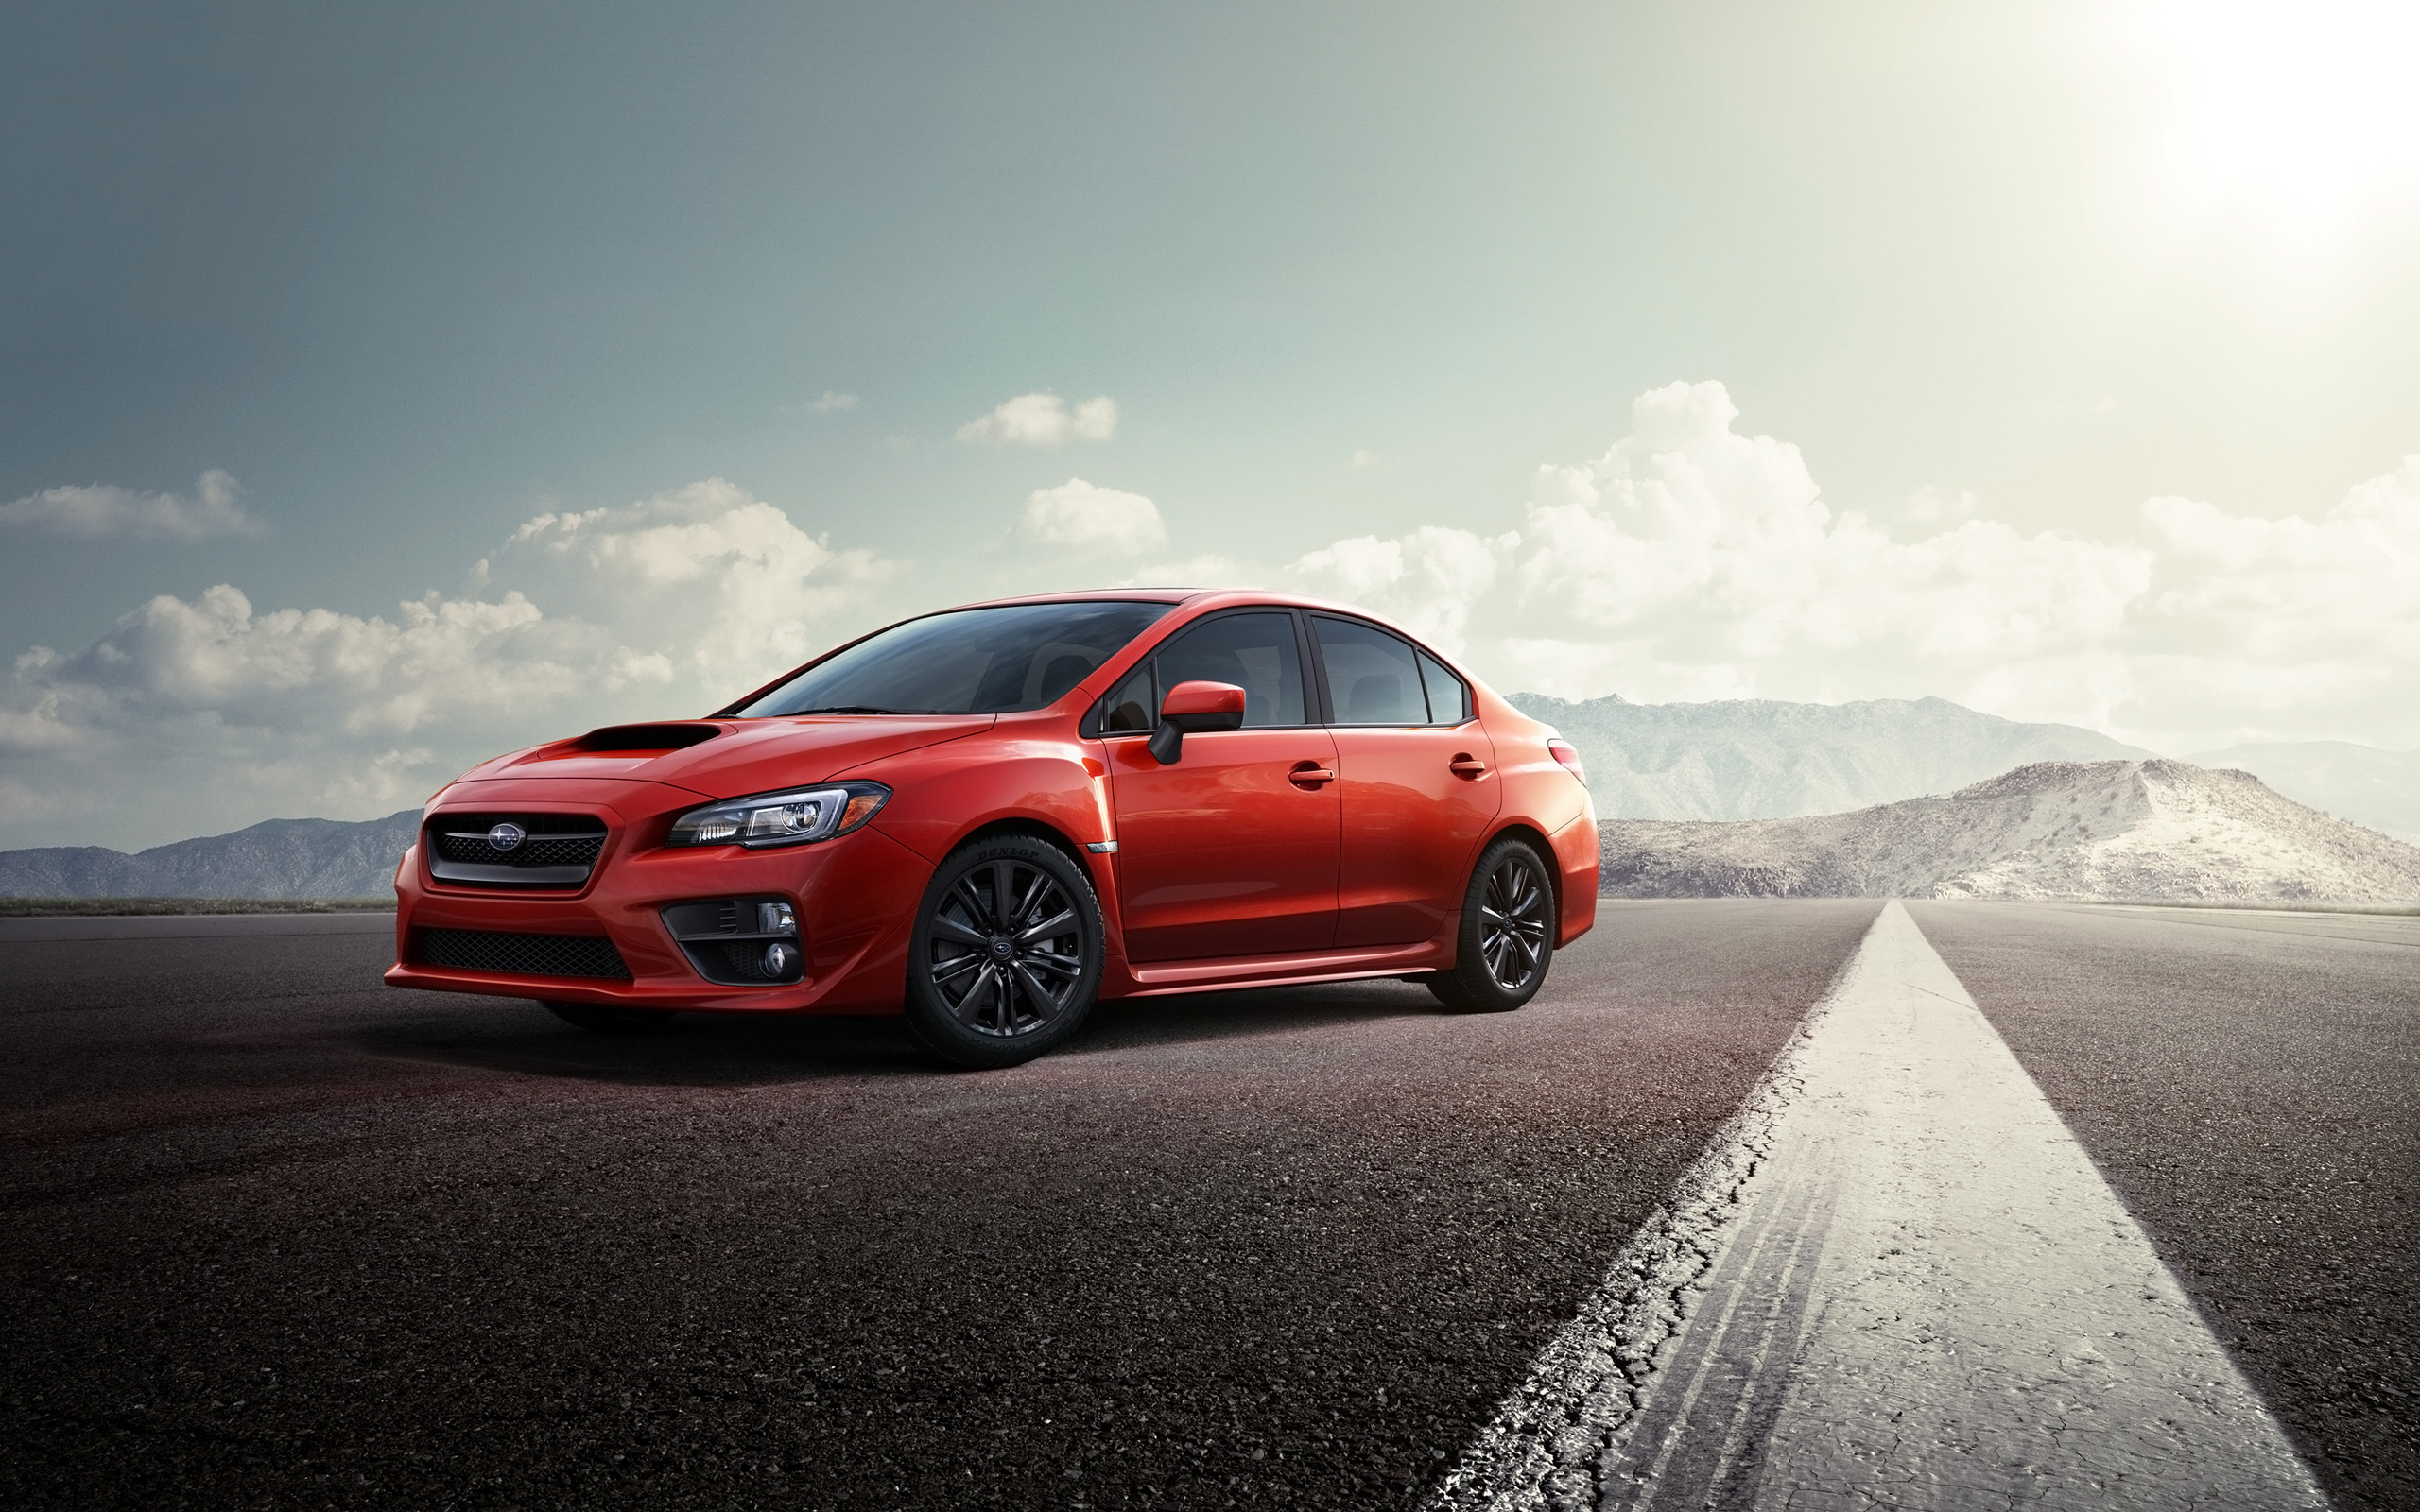 2015 Subaru WRX Wallpaper HD Car Wallpapers 2560x1600